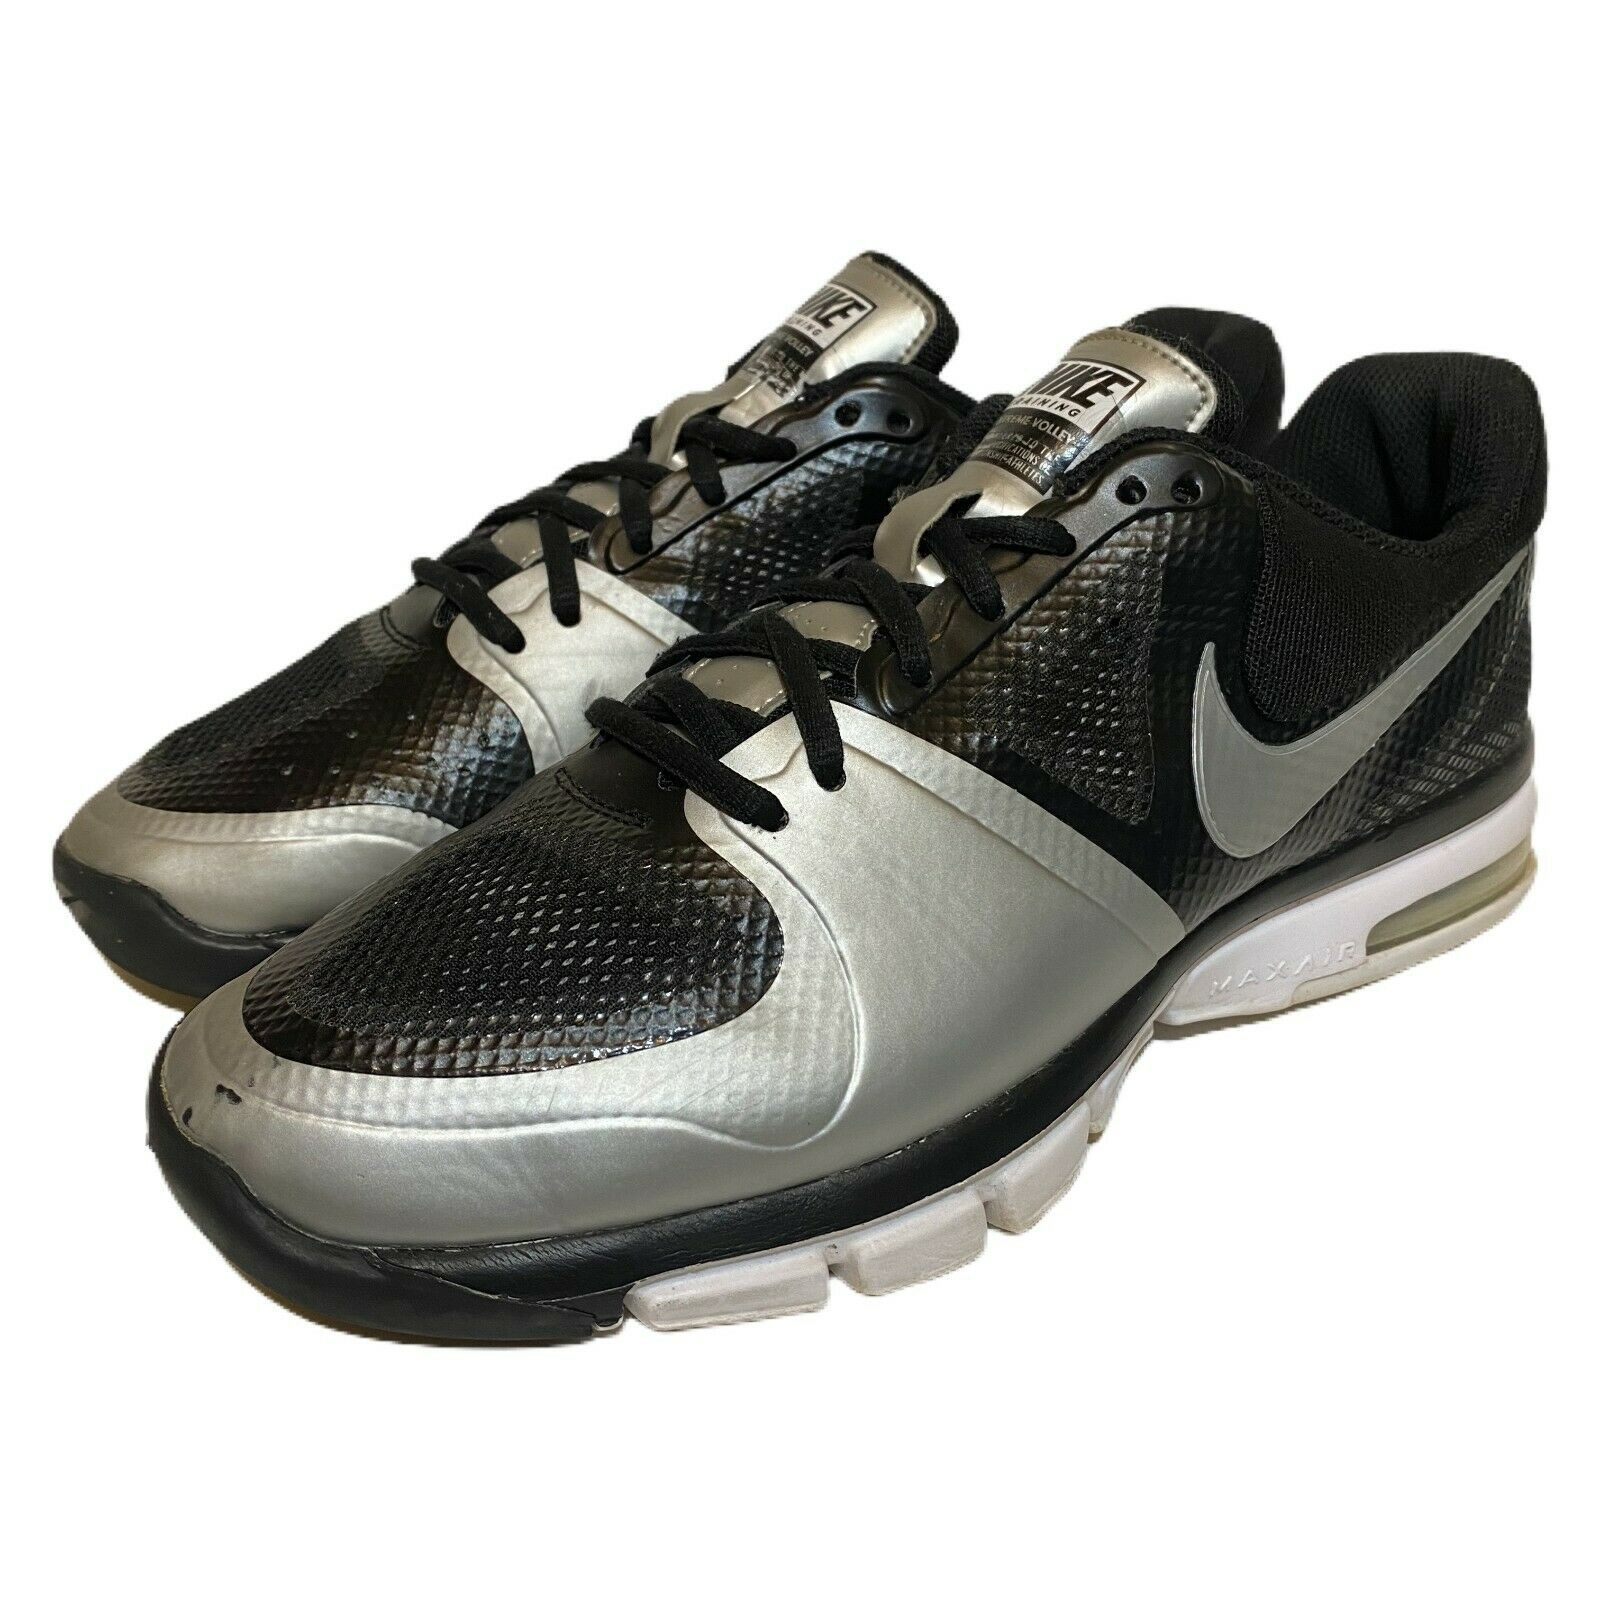 Primary image for Nike Women Air Extreme Volley Black Silver Volleyball Shoes 442249-001 Size 10.5